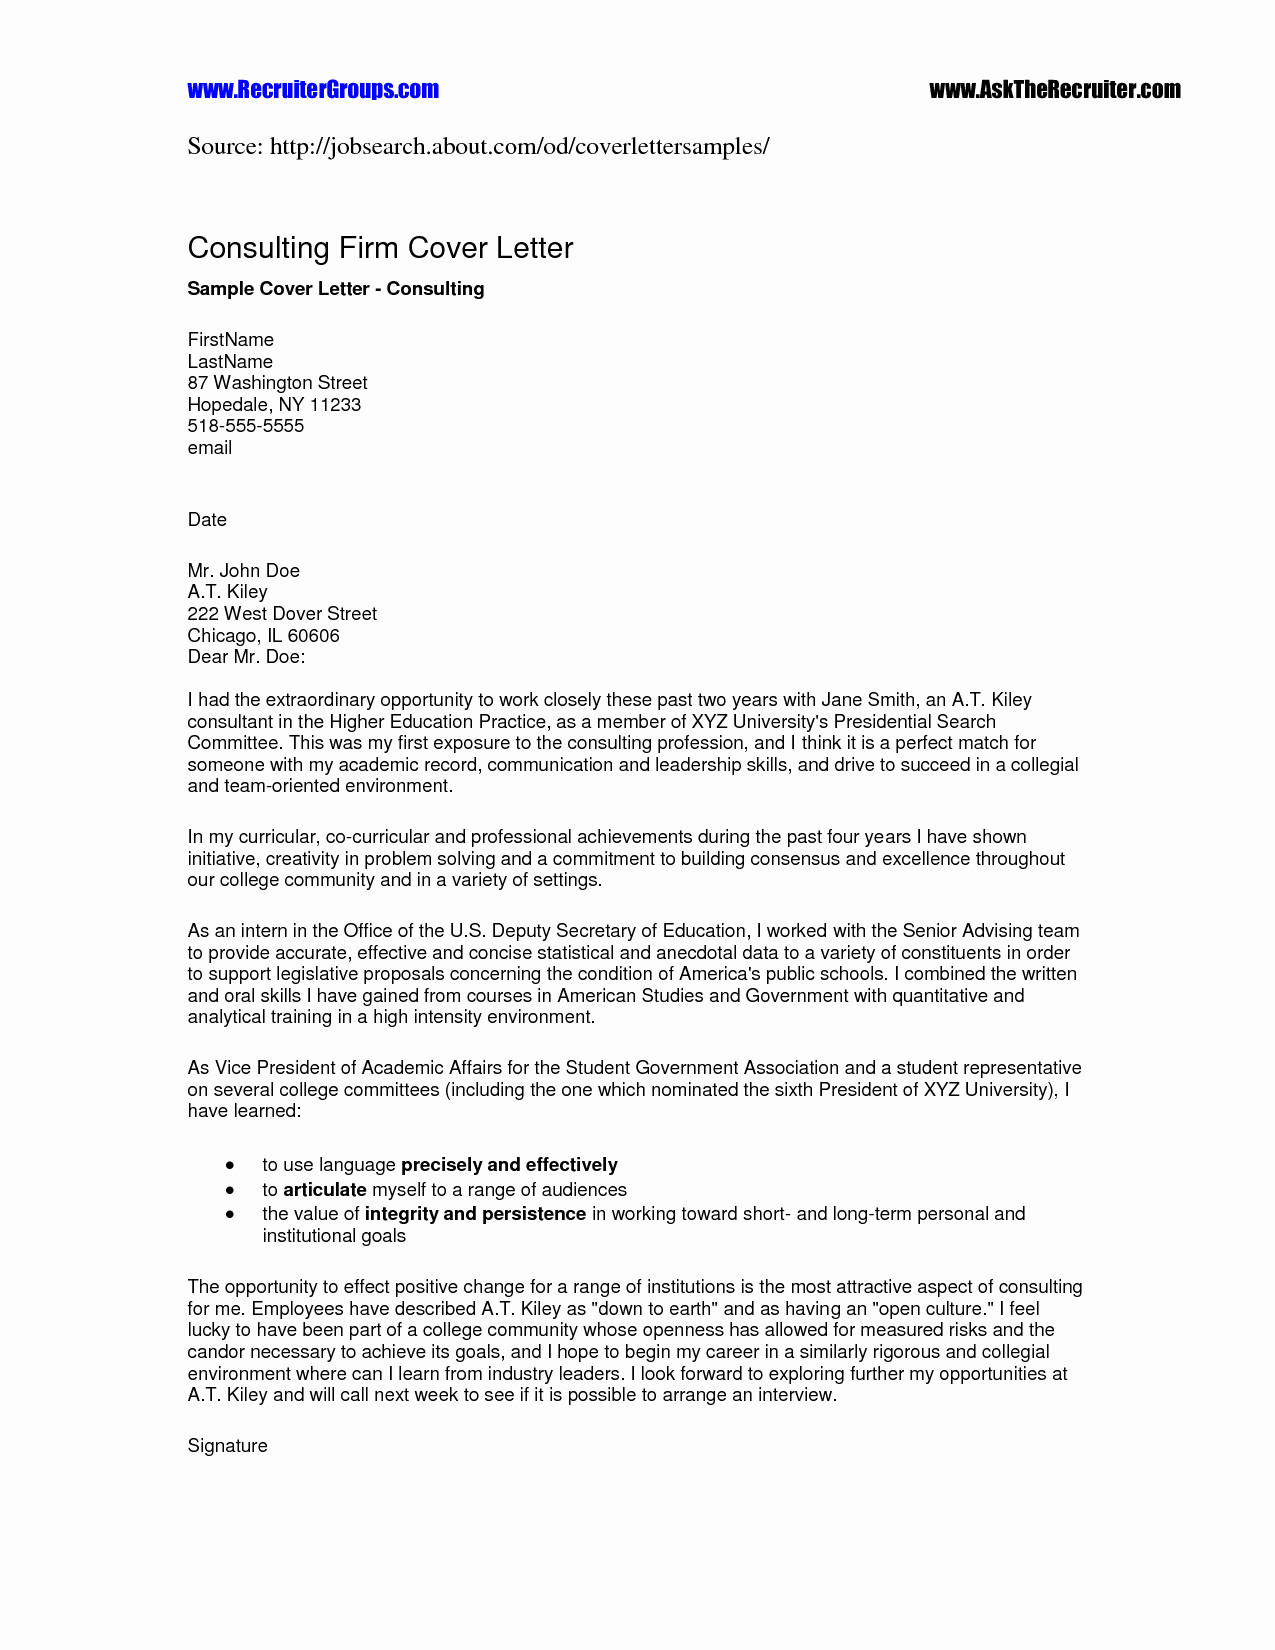 Resume Template for Letter Of Recommendation - Best Resume format for Hotel Industry Reference Practice Resume